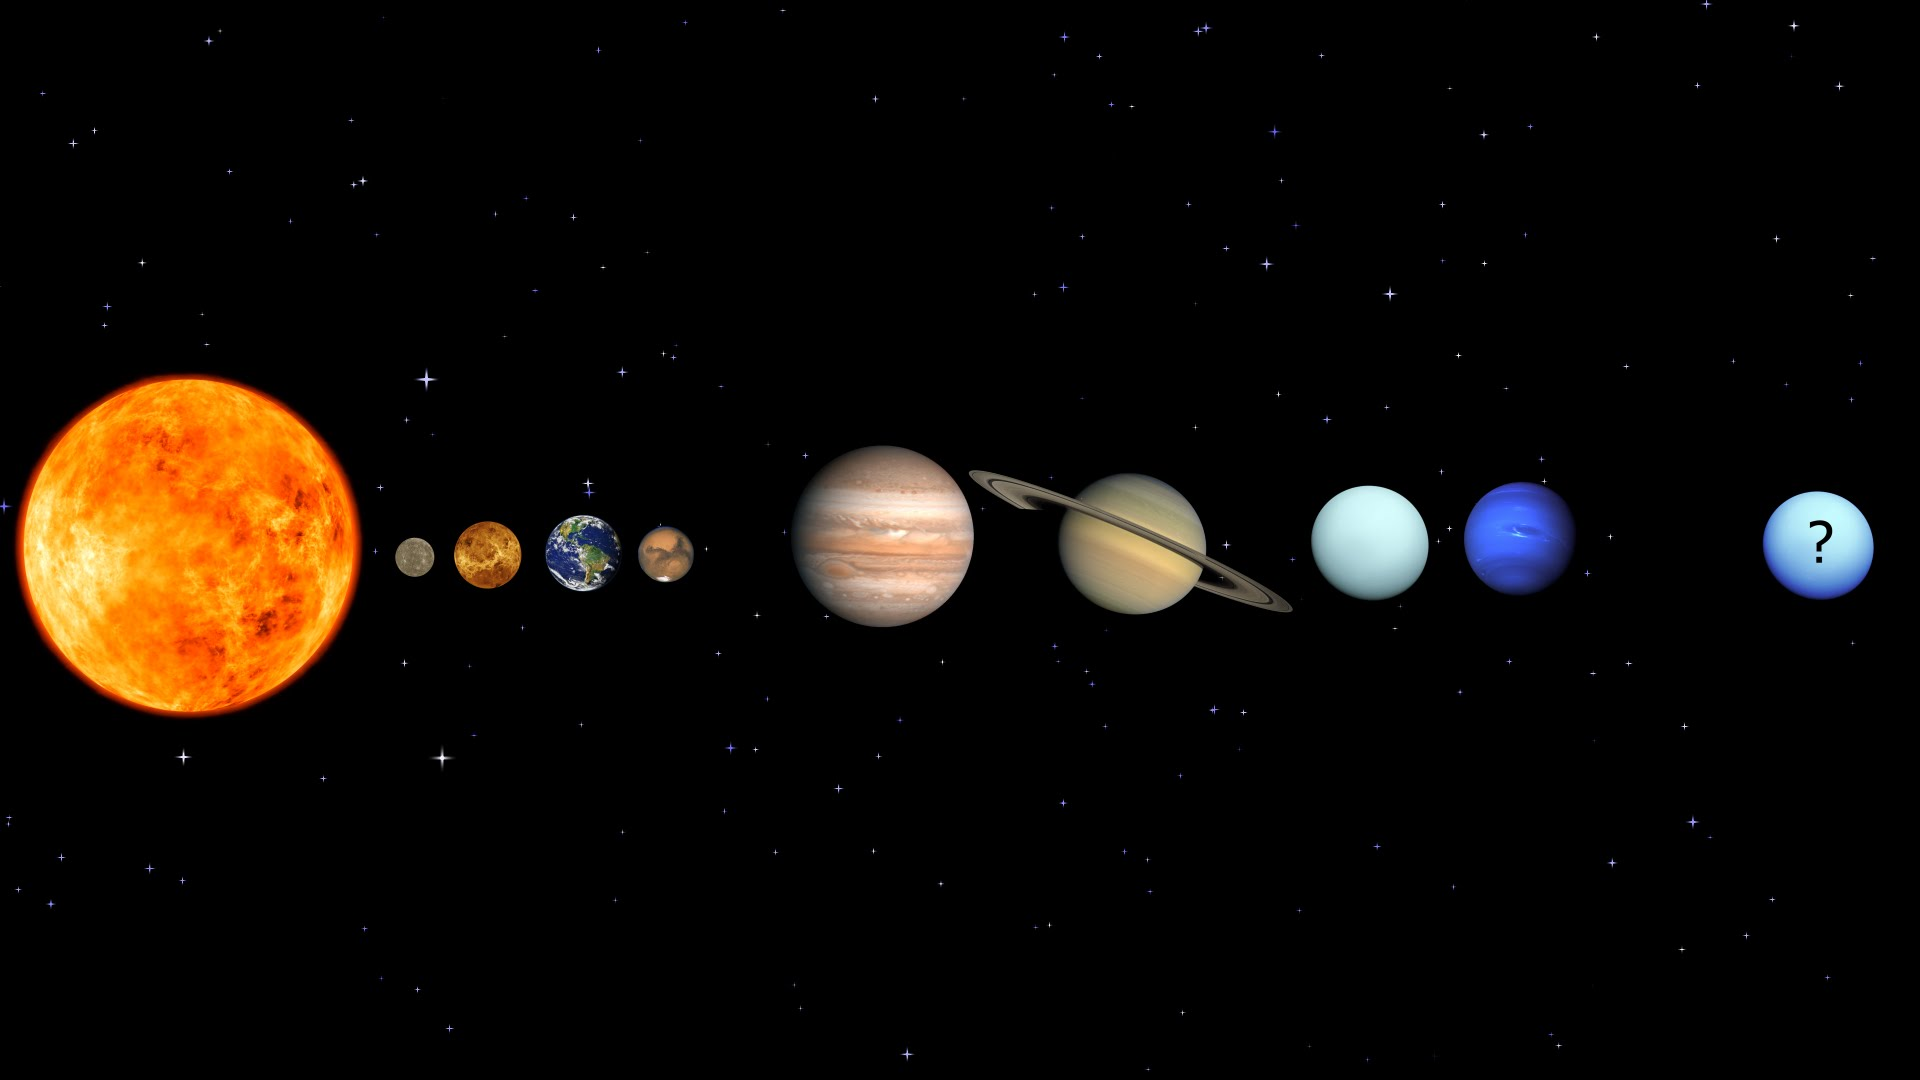 outer planets of the solar system - HD1920×1080